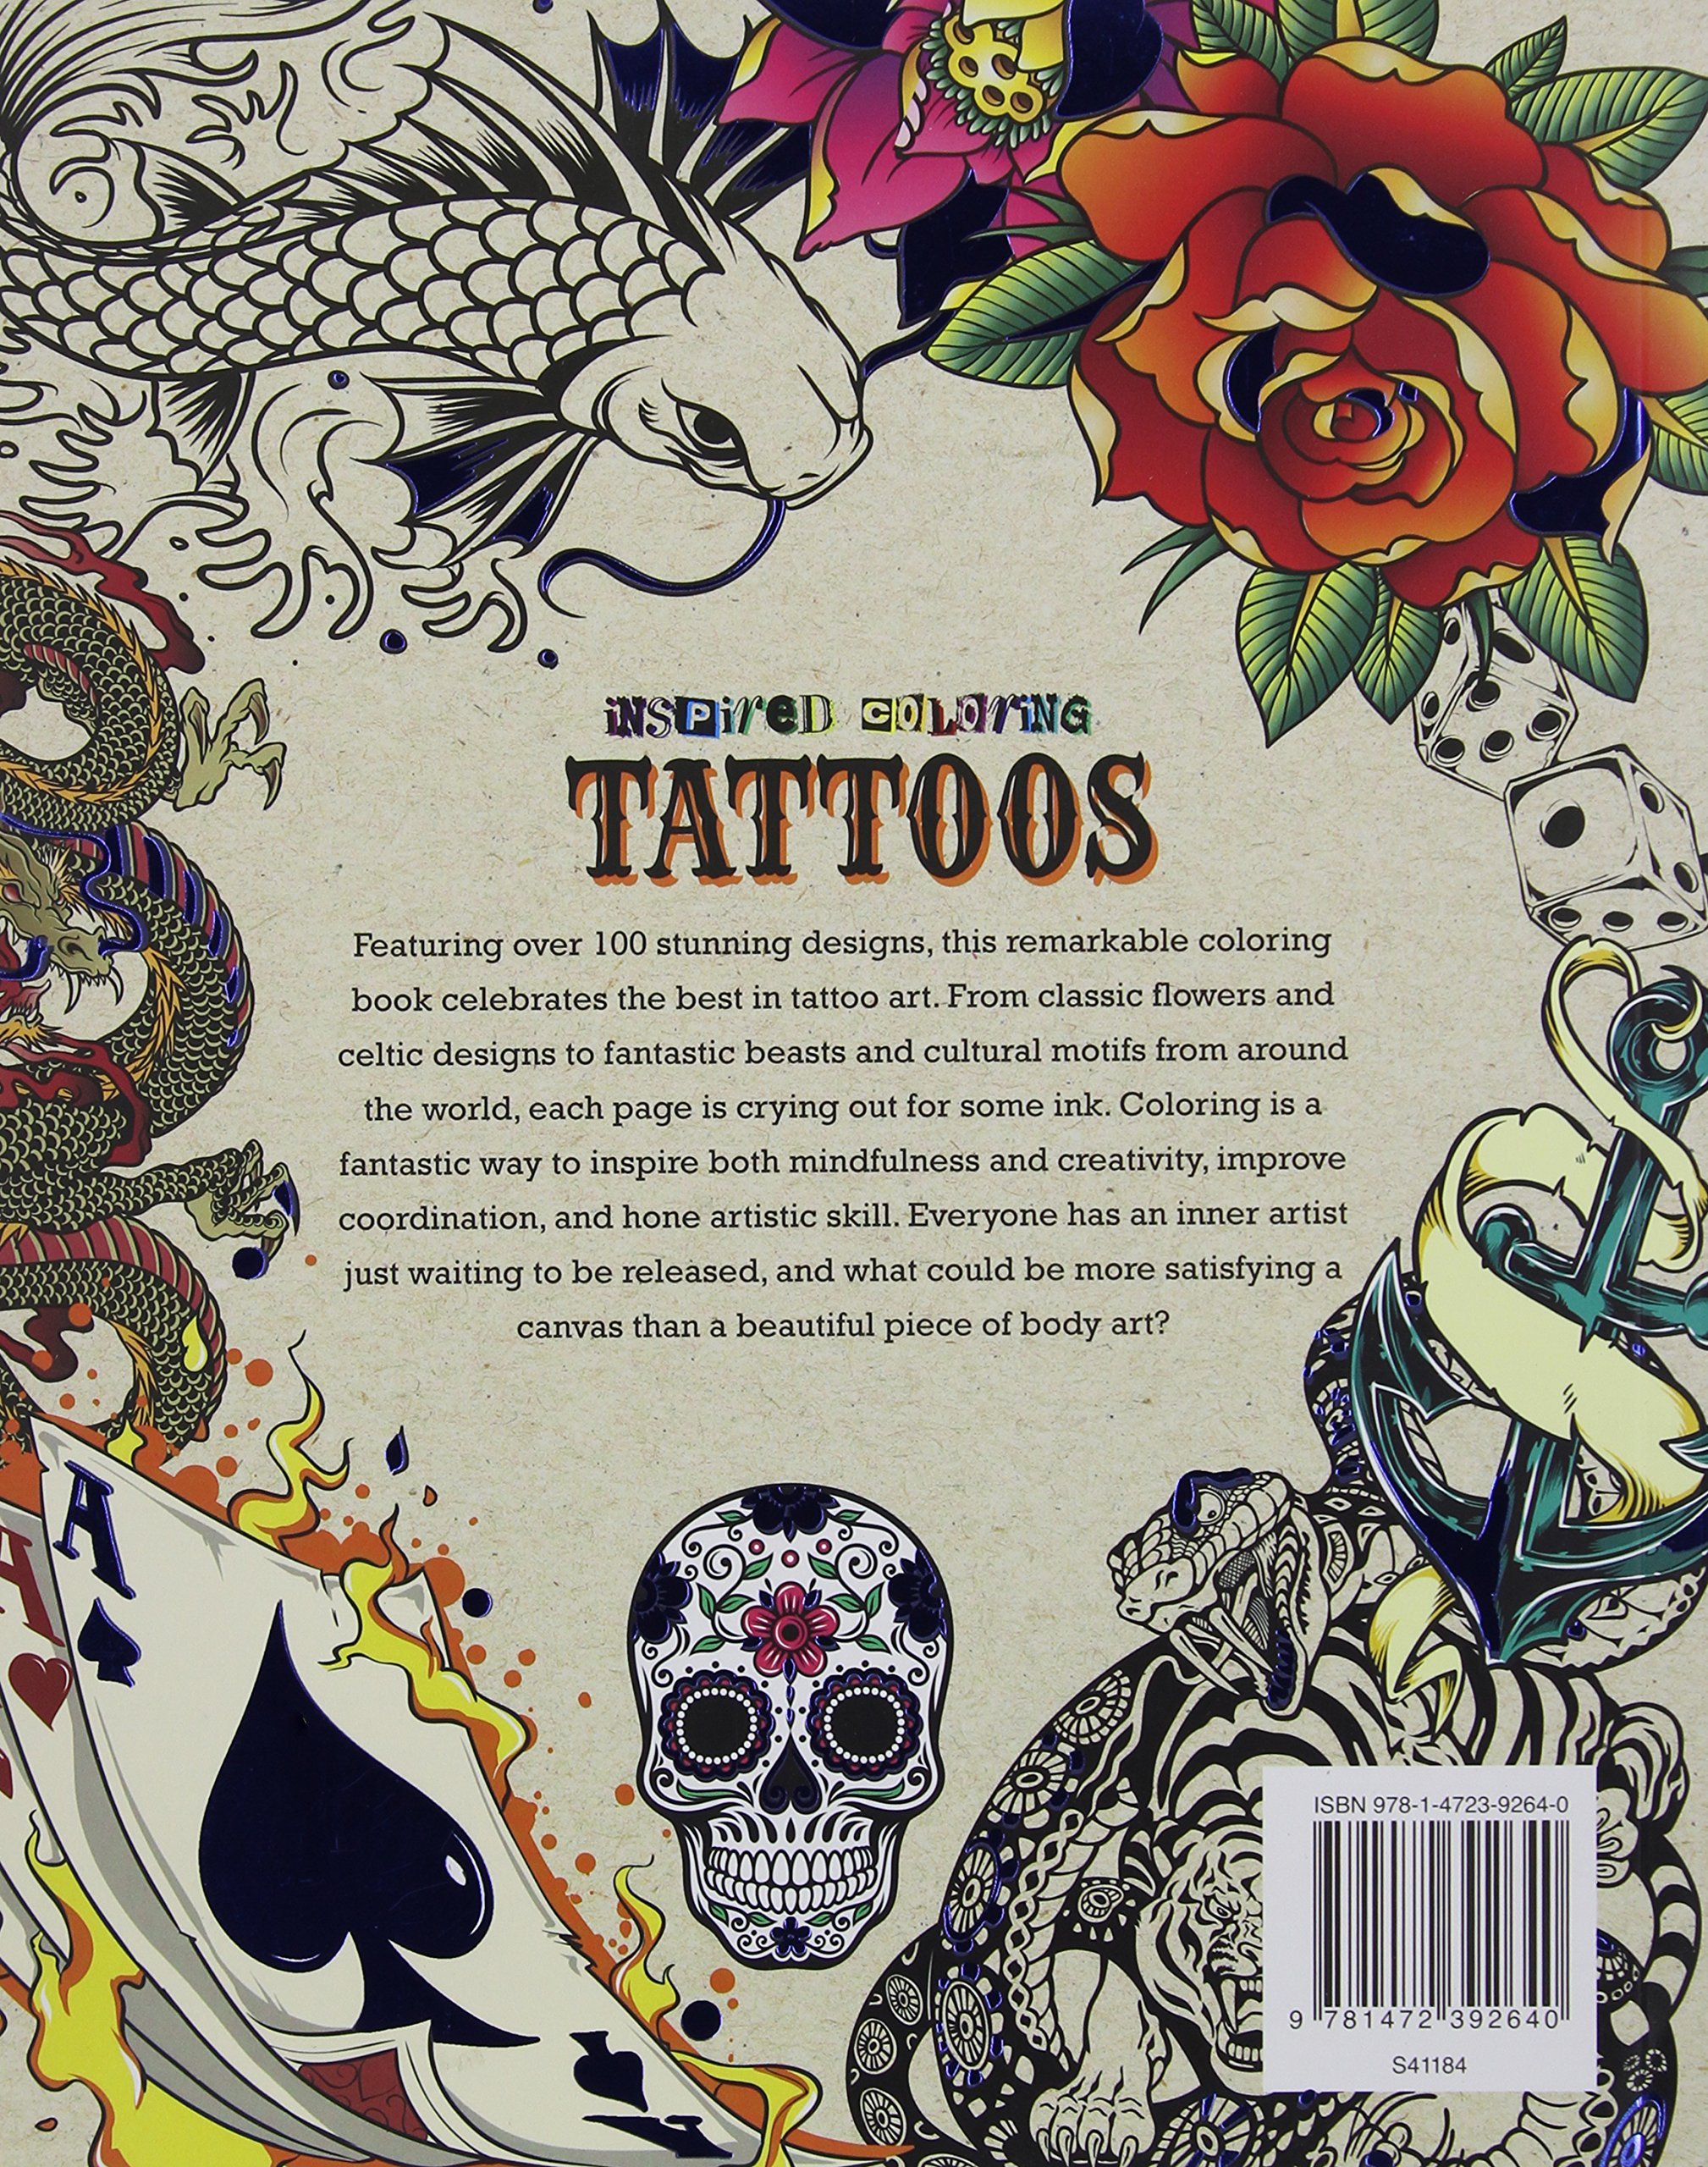 Tattoos Inspired Coloring Parragon Books Amazon